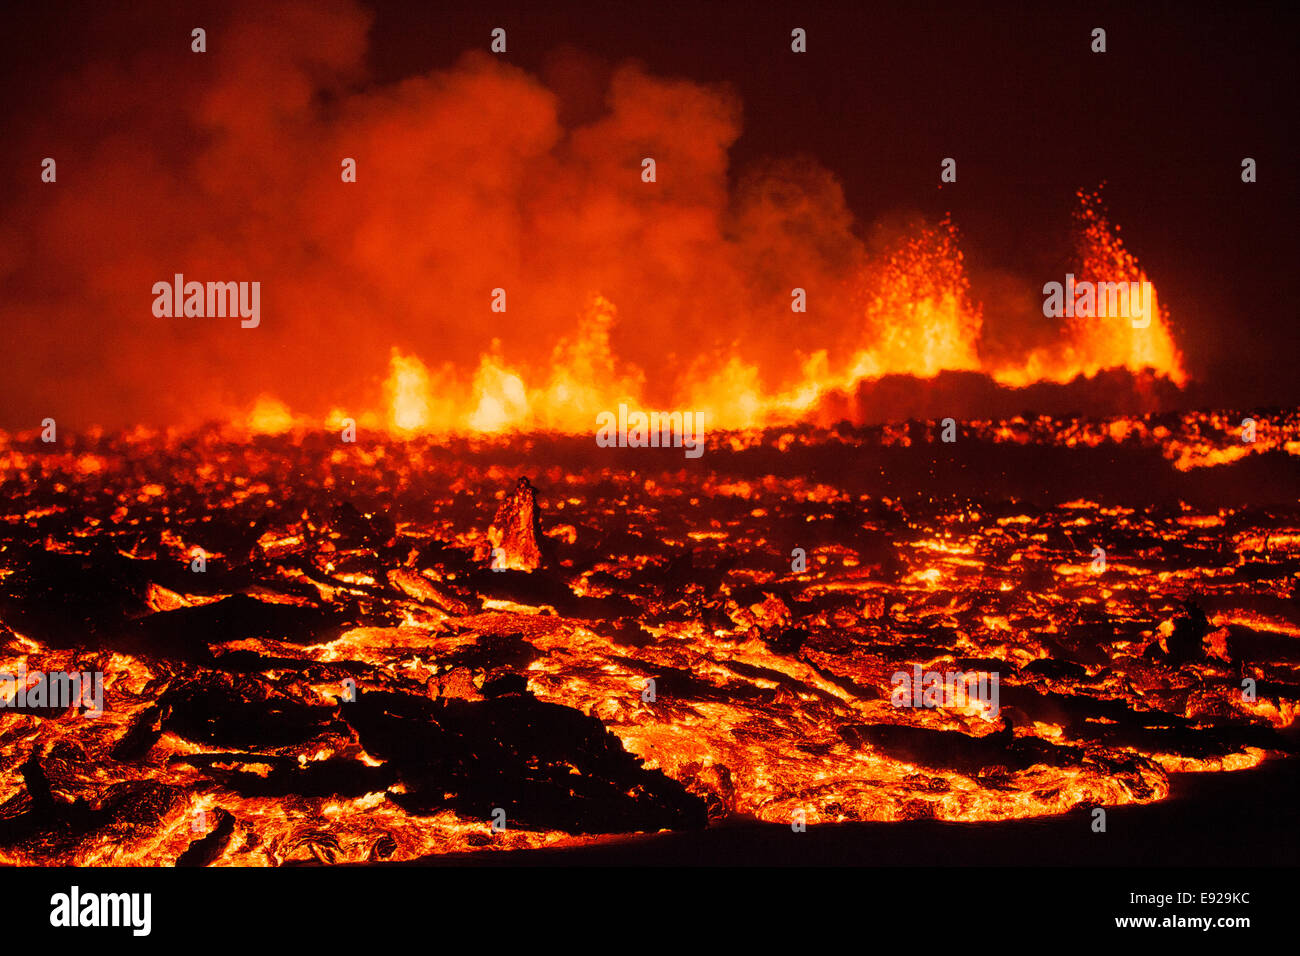 eruption across fresh lava I - Stock Image